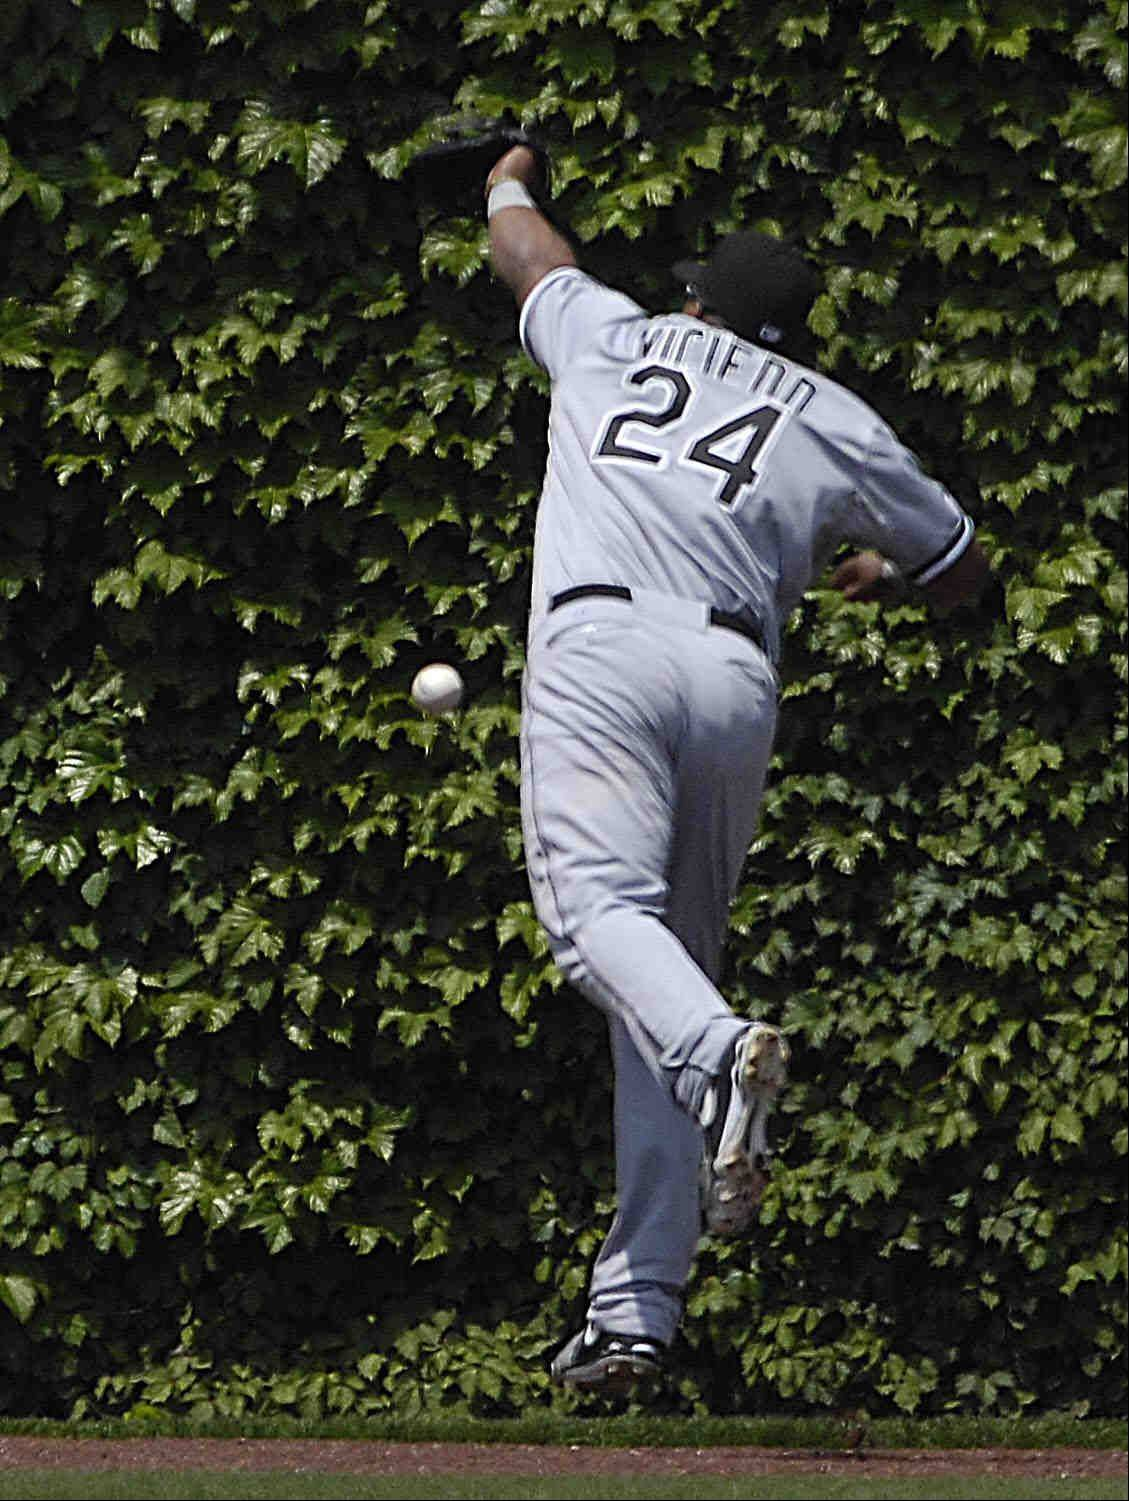 Chicago White Sox left fielder Dayan Viciedo missed a fly ball by Chicago Cubs leadoff hitter David DeJesus in the first inning.